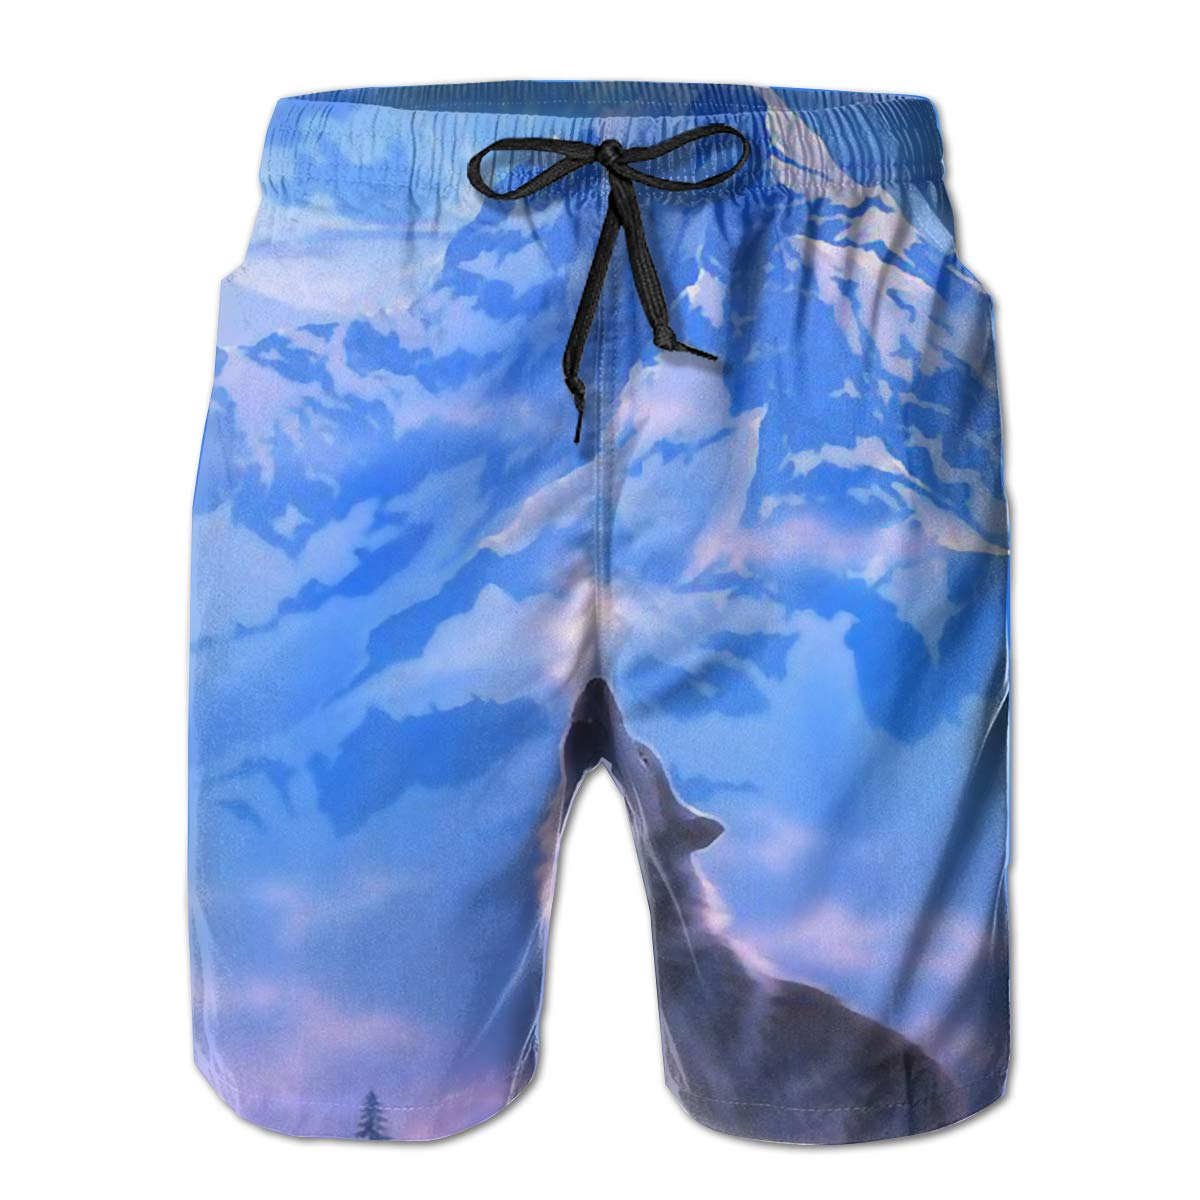 SARA NELL Mens Swim Trunks Wolf Howl in The Snow Mountain Surfing Beach Board Shorts Swimwear